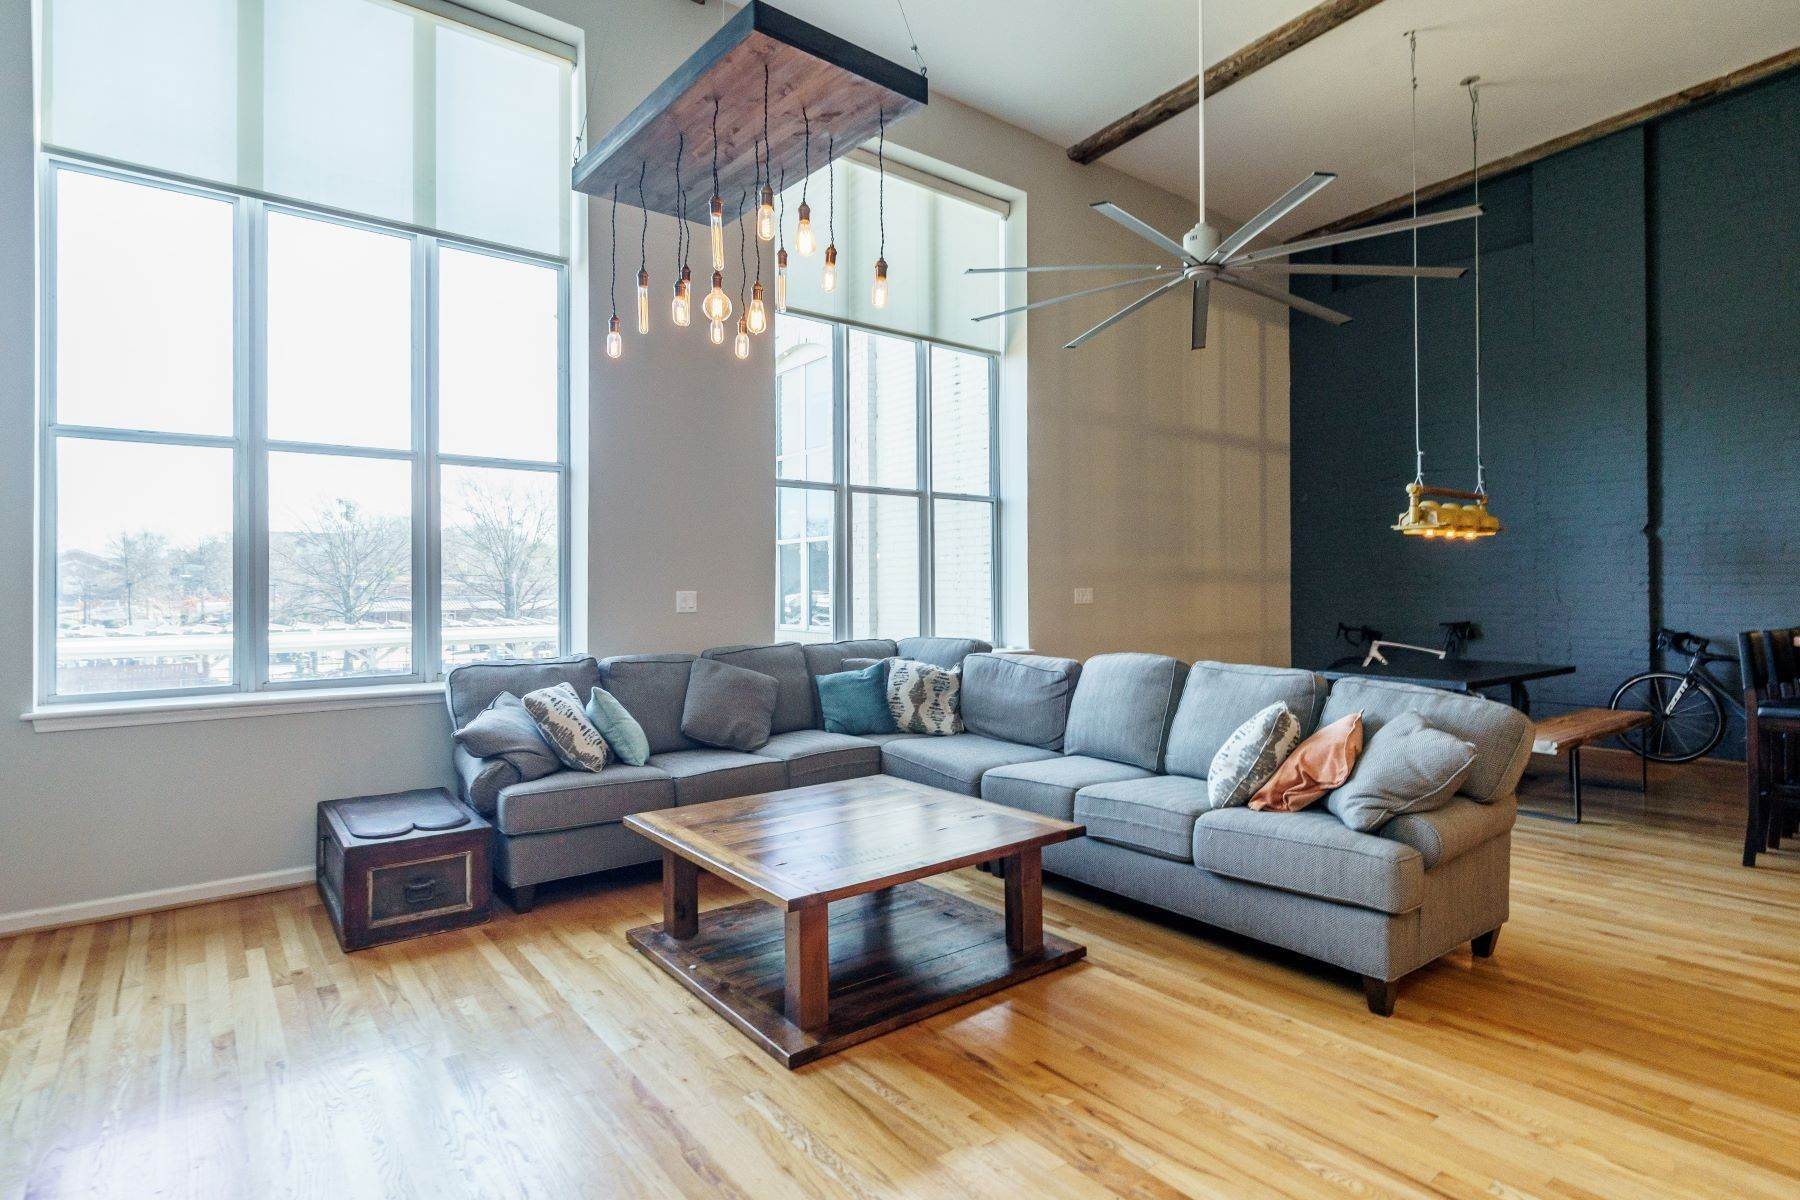 7. Single Family Homes for Sale at Large Industrial Loft in The Cotton Mill 614 Capital Boulevard Unit 225 Raleigh, North Carolina 27603 United States